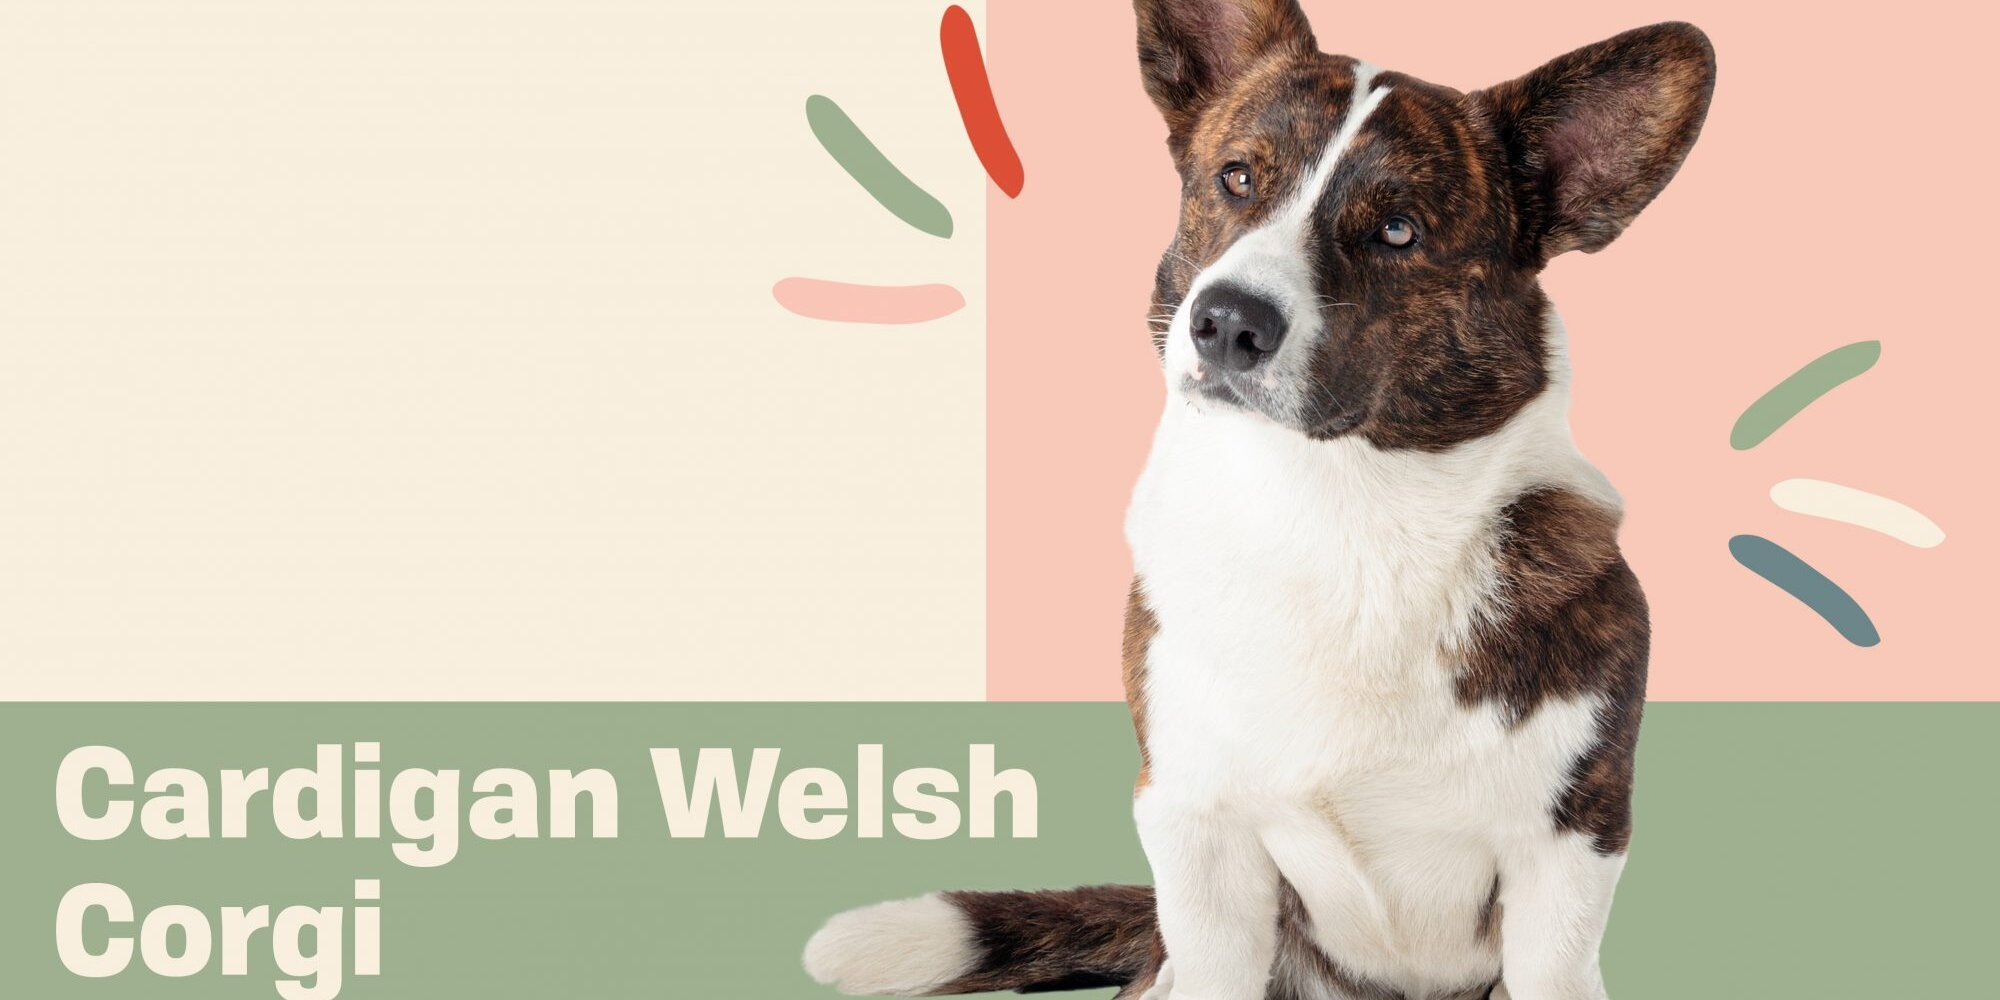 Get to Know the Cardigan Welsh Corgi